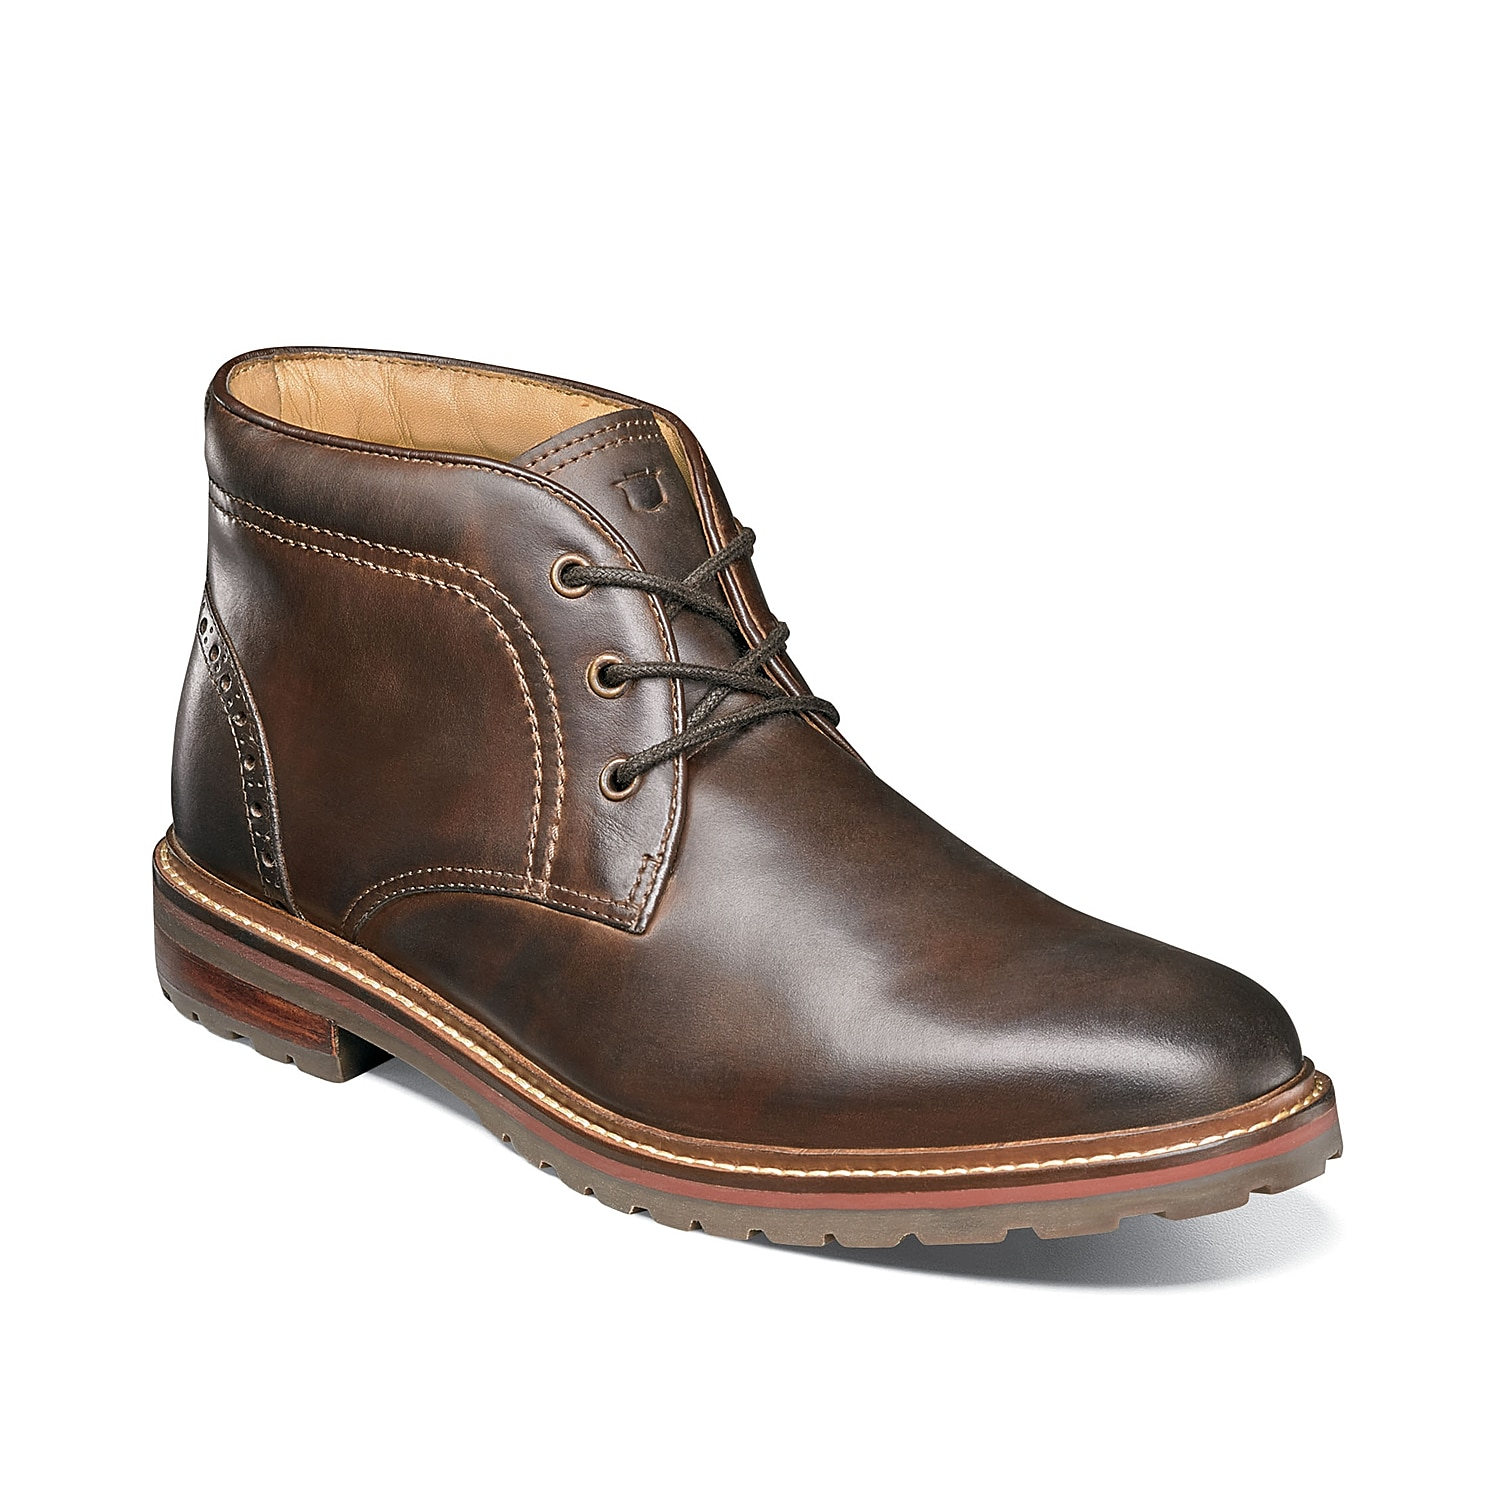 The Fenway chukka boot from Florsheim will fit all of your fashion needs. This lace-up features a sleek leather finish and a hint of perforated brogue detailing for an iconic, everyday look!